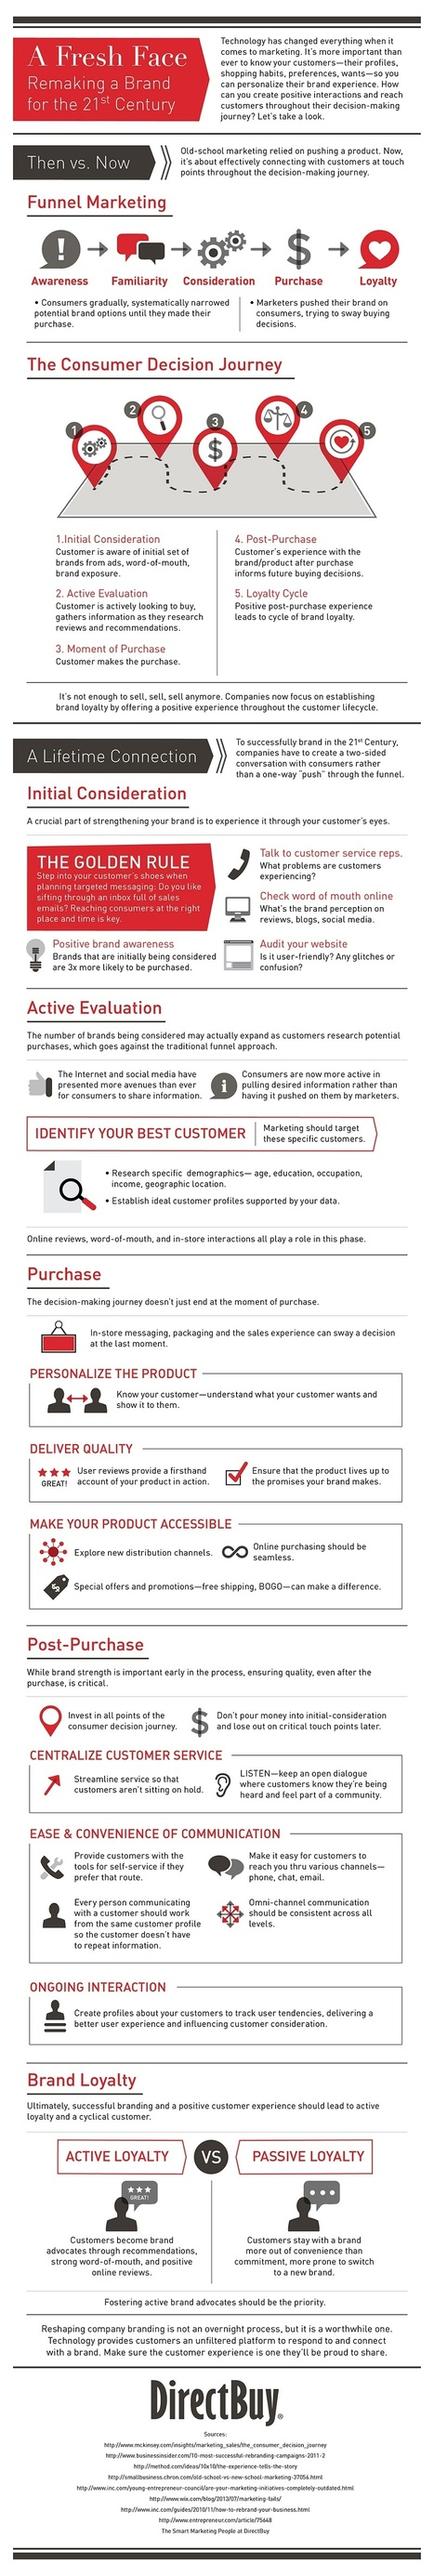 How to Reinvent Your Marketing for This Century - Infographic | Social Media, Marketing, Design ... | Scoop.it